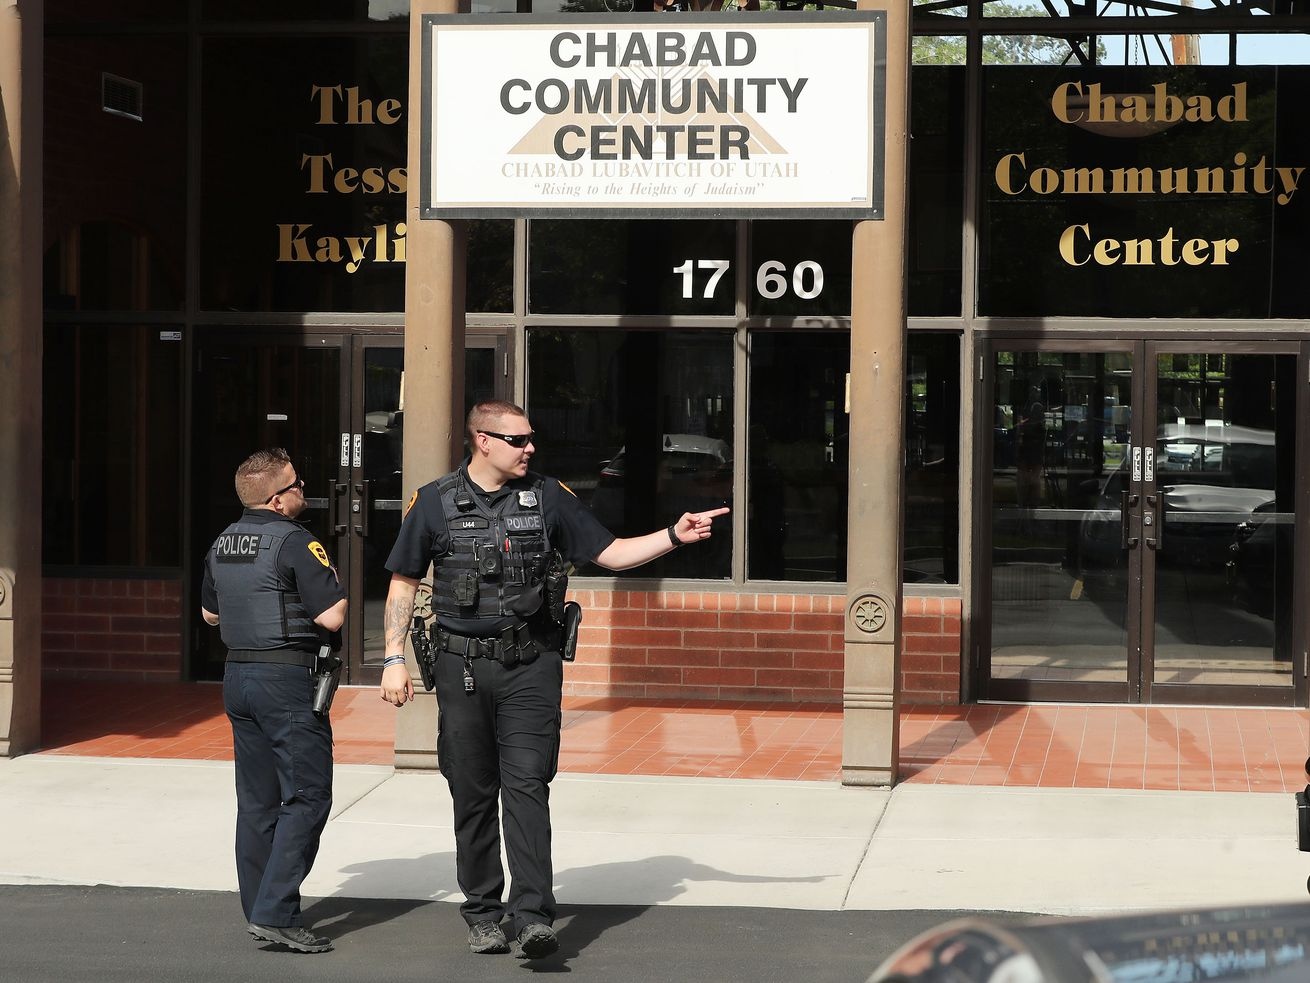 Salt Lake City police investigate after a swastika was scratched into the front door of Chabad Lubavitch of Utah synagogue in Salt Lake City.